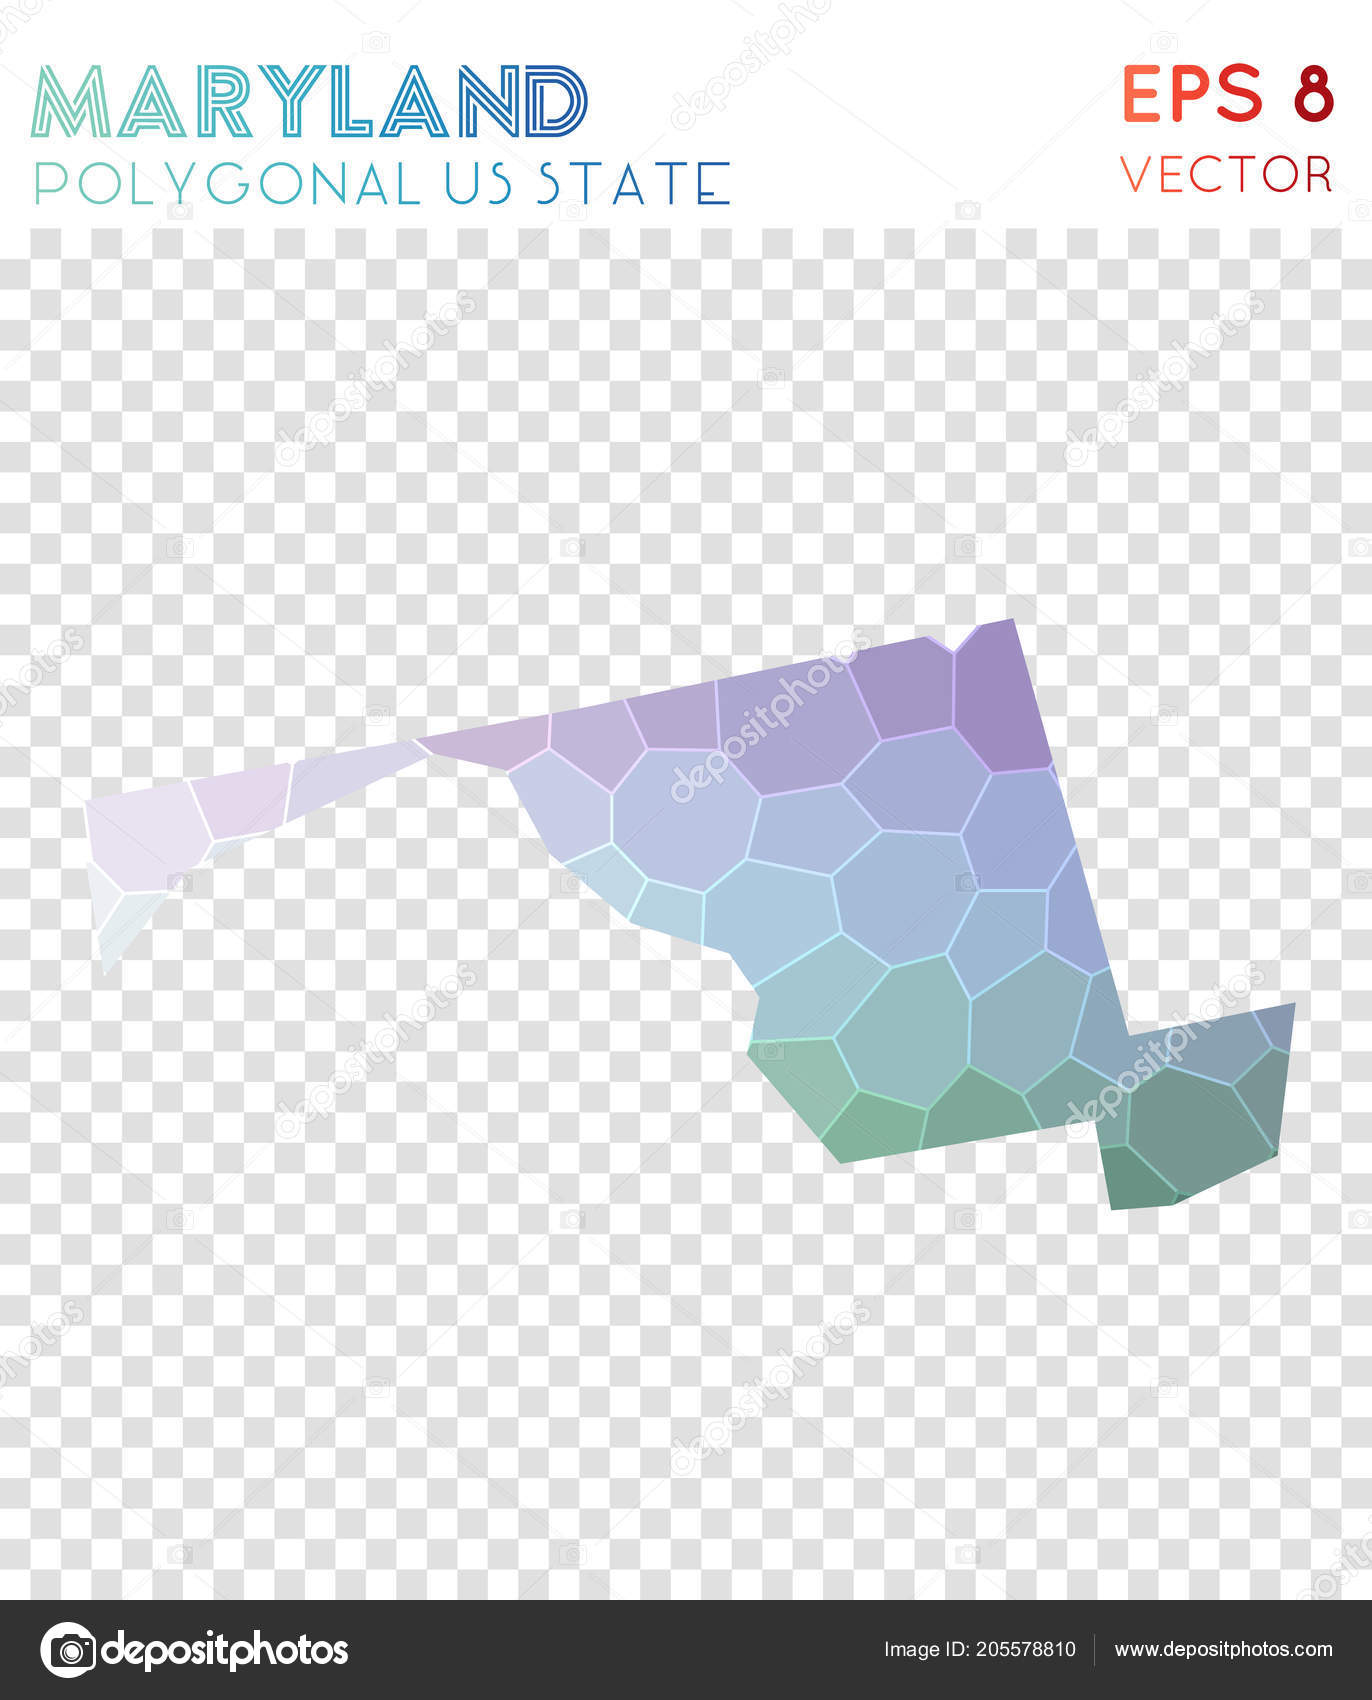 Fantastisch Maryland Polygonal Map, Mosaic Style Us State. Wonderful Low Poly Style,  Modern Design. Maryland Polygonal Map For Infographics Or Presentation. U2014  Vetor De ...